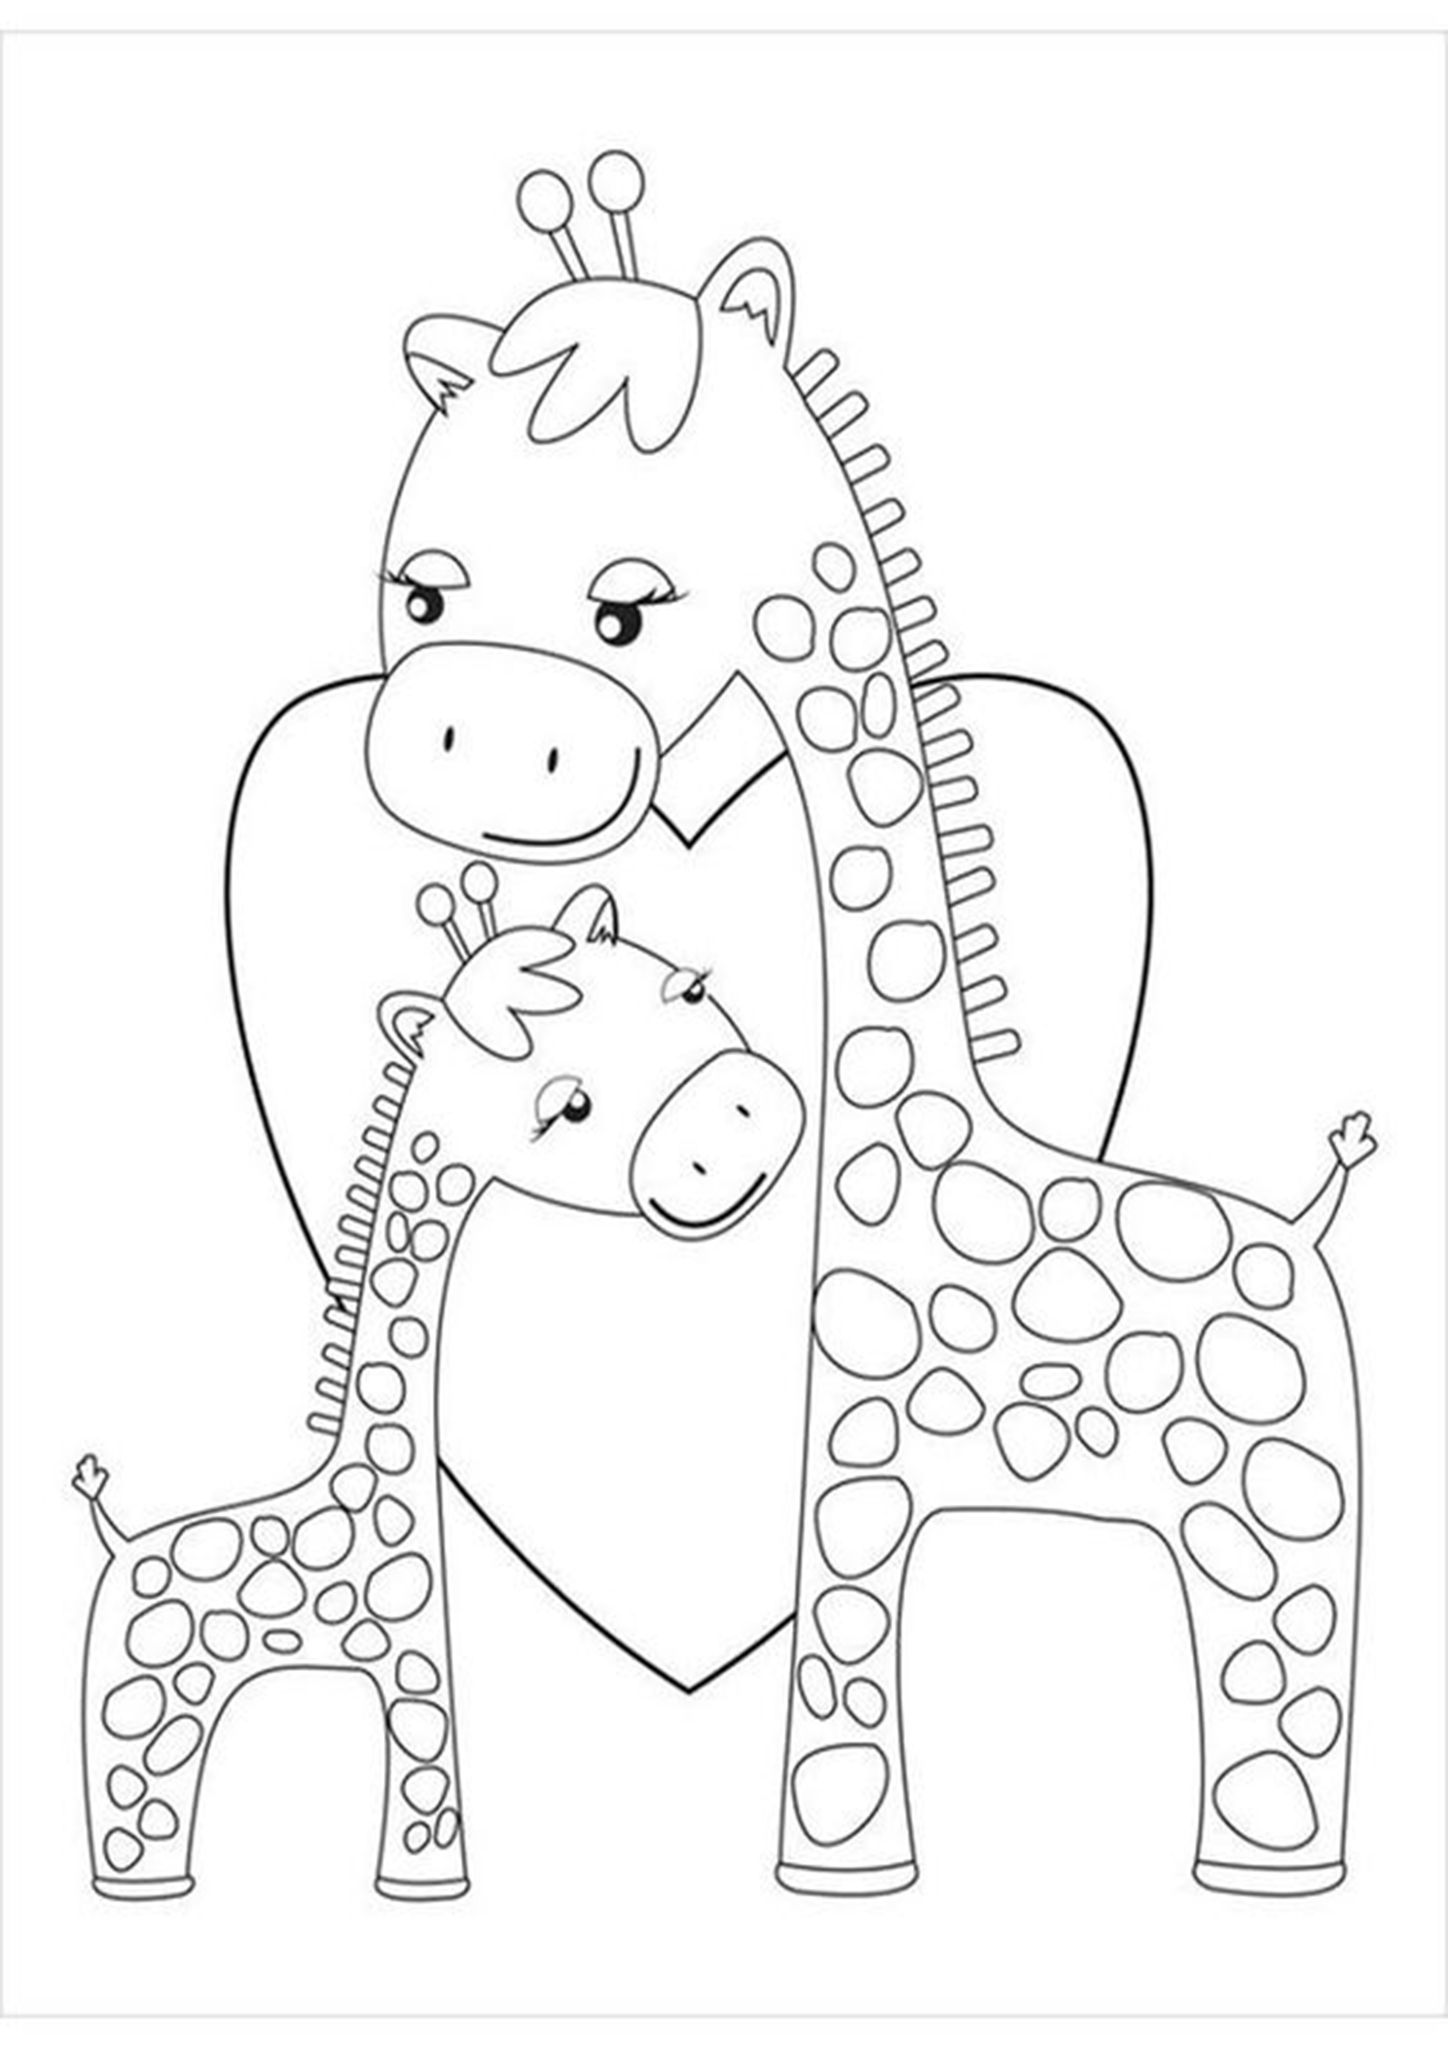 Free Easy To Print Giraffe Coloring Pages Giraffe Coloring Pages Cartoon Coloring Pages Family Coloring Pages